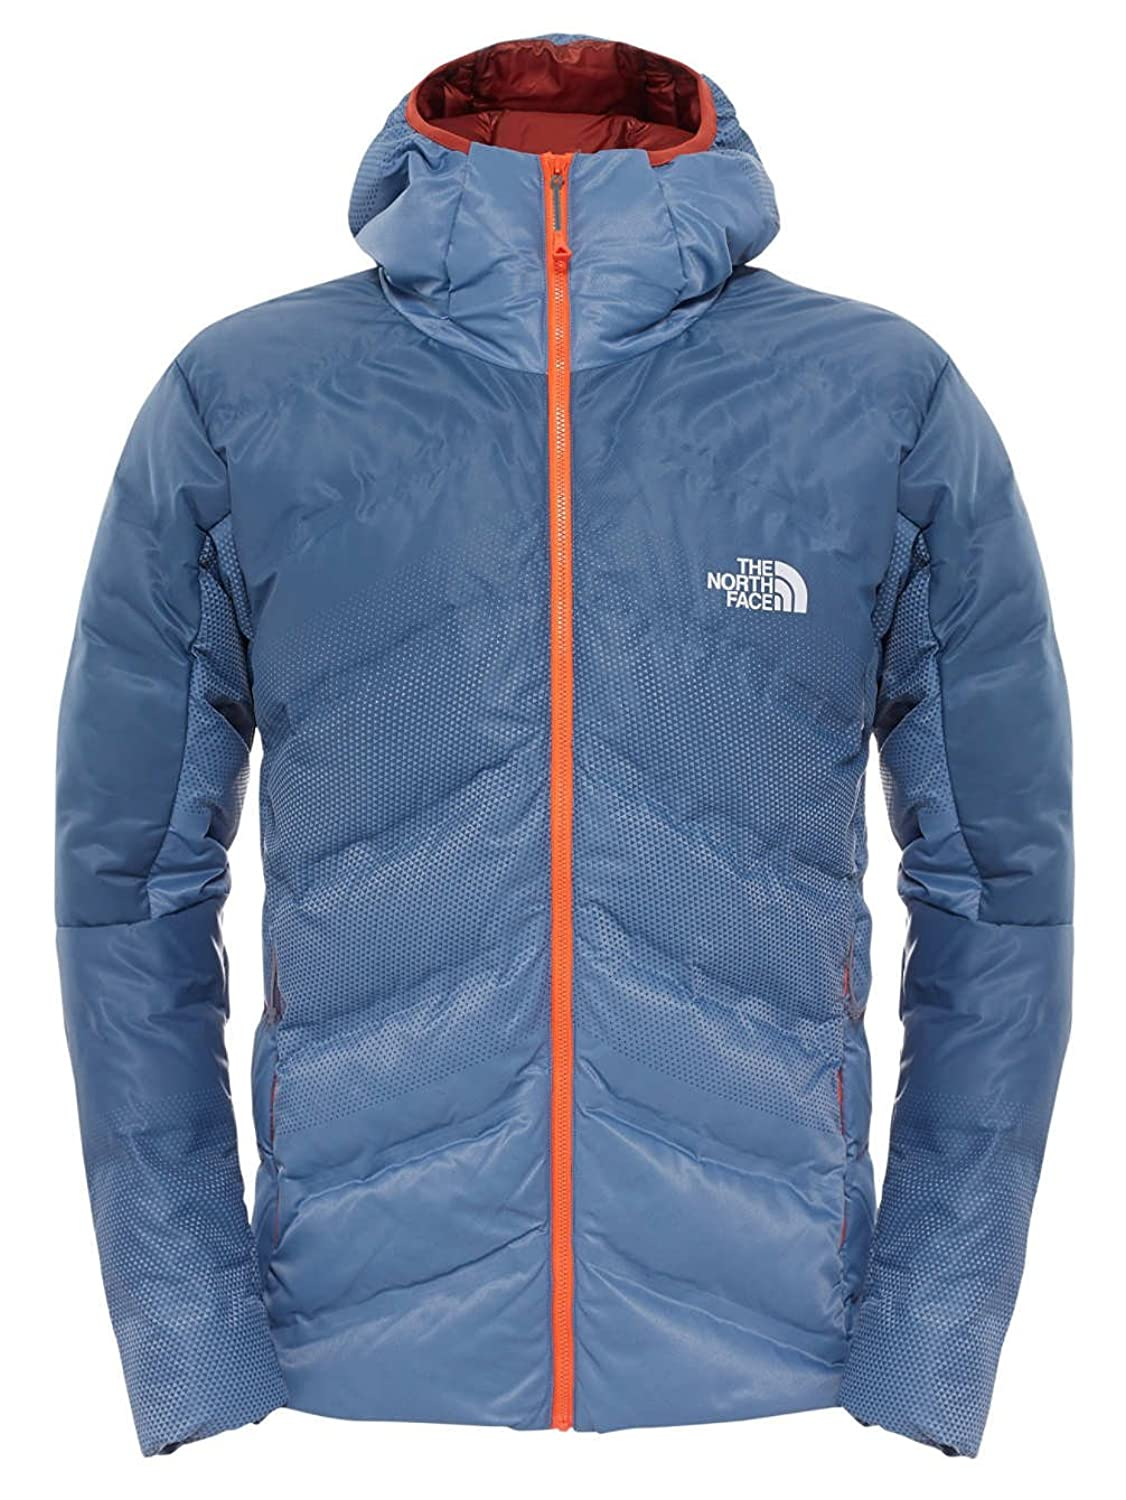 The North Face Winterjacke jetzt bestellen